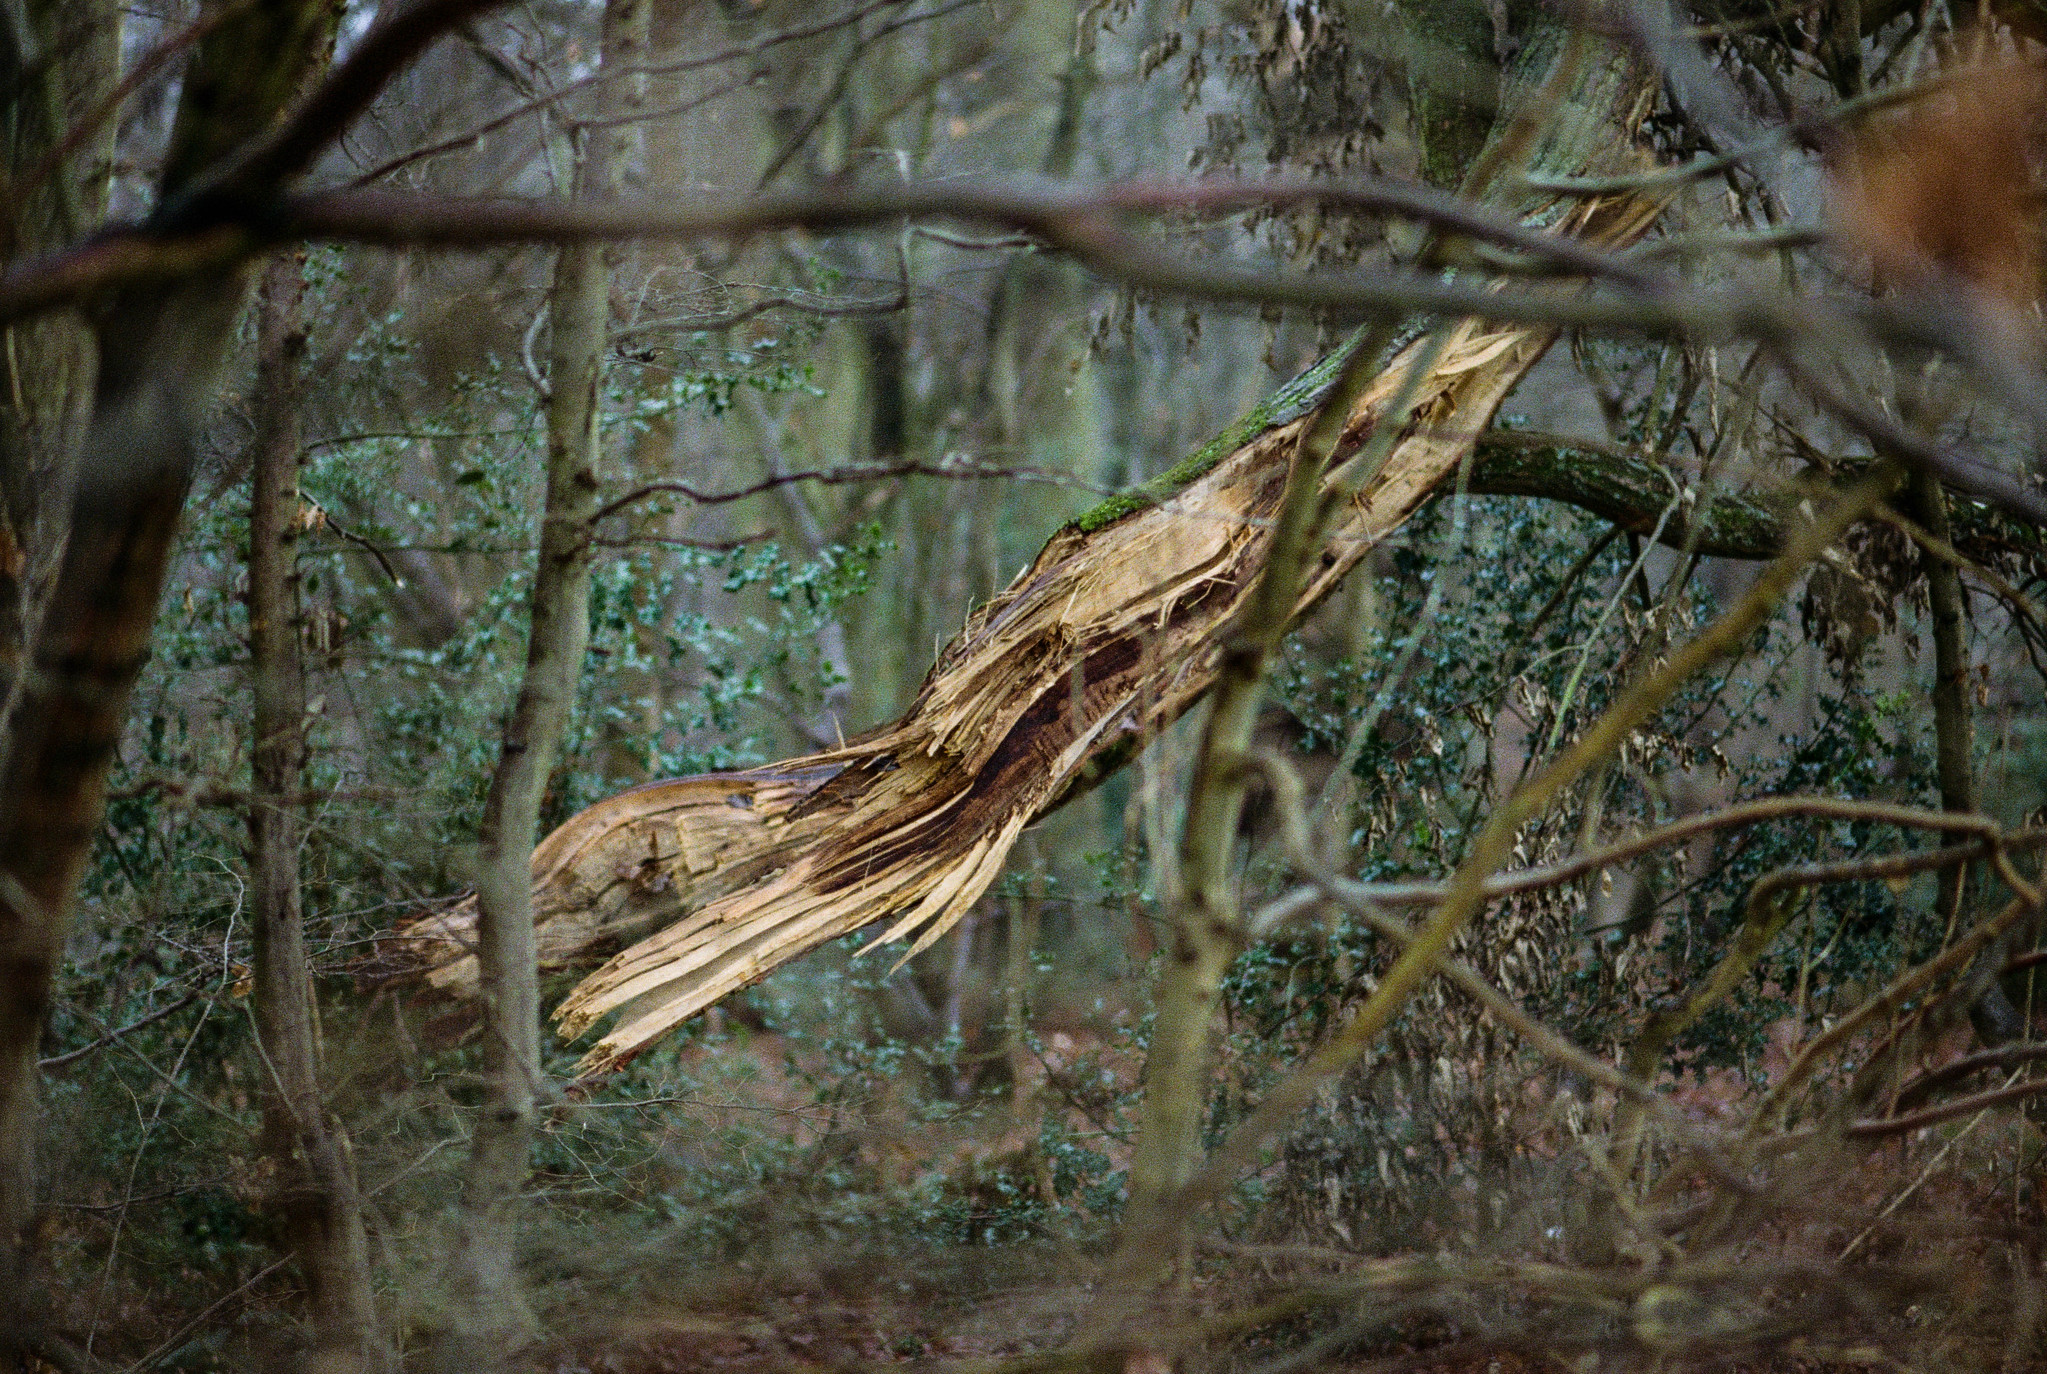 A felled tree in a dense woodland, with its splintered heartwood exposed.